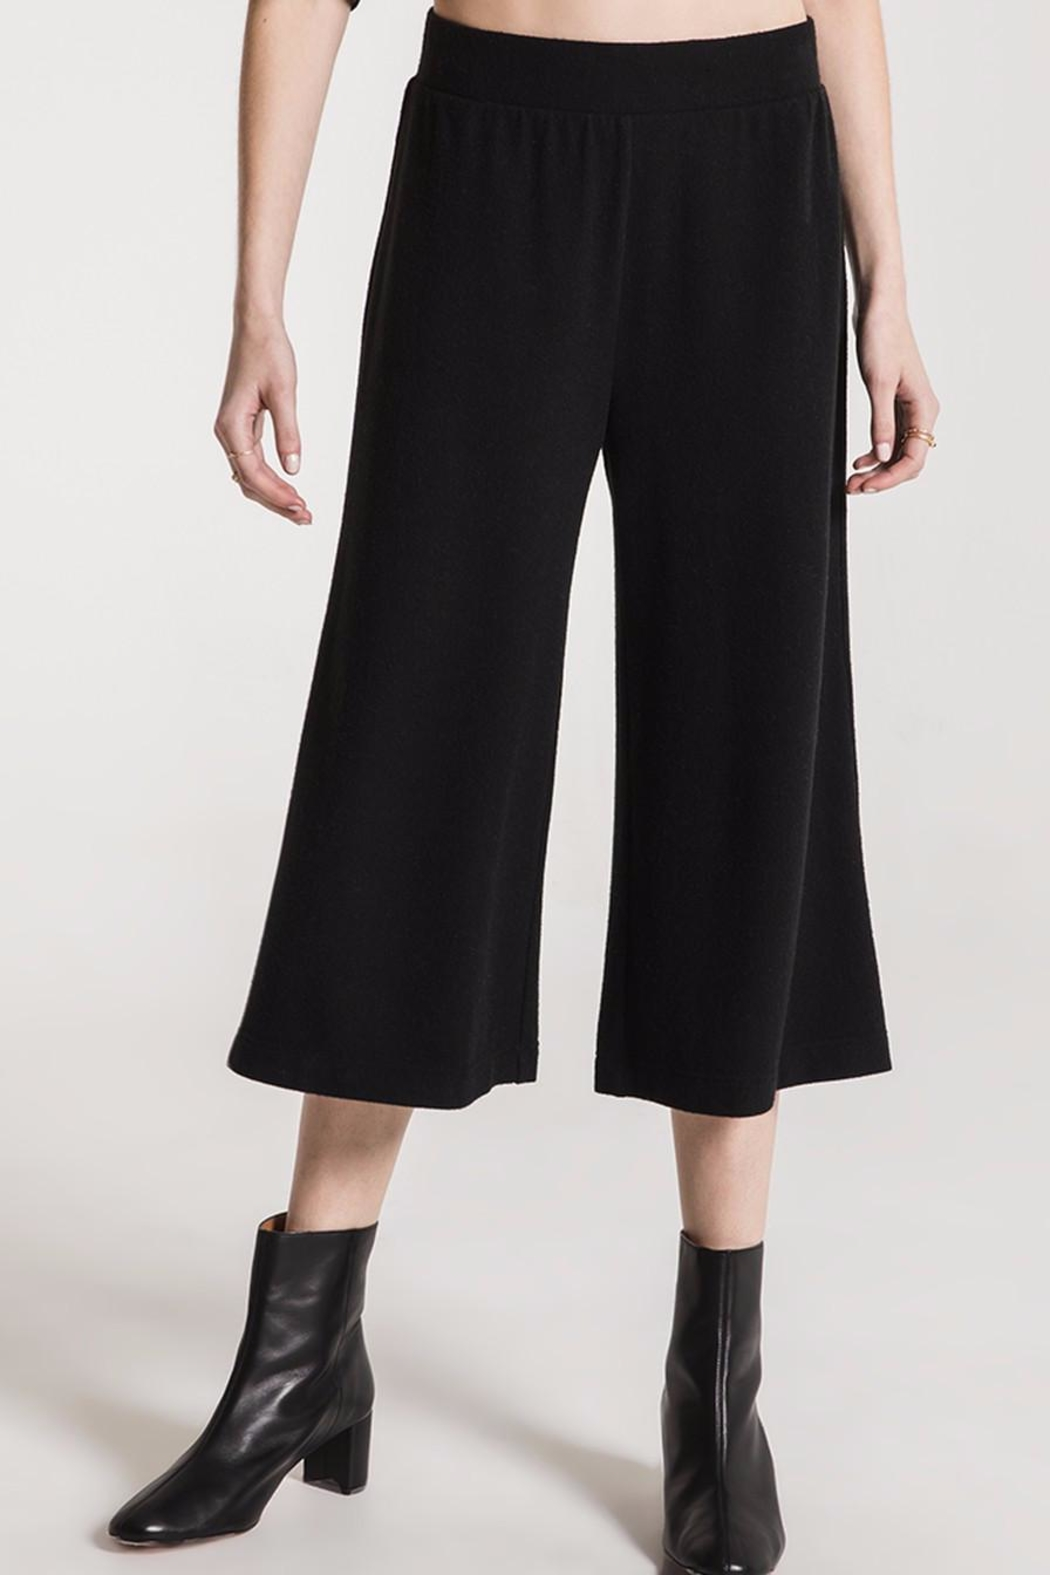 Zsupply Soft-Knit Pullon Culottes - Front Cropped Image